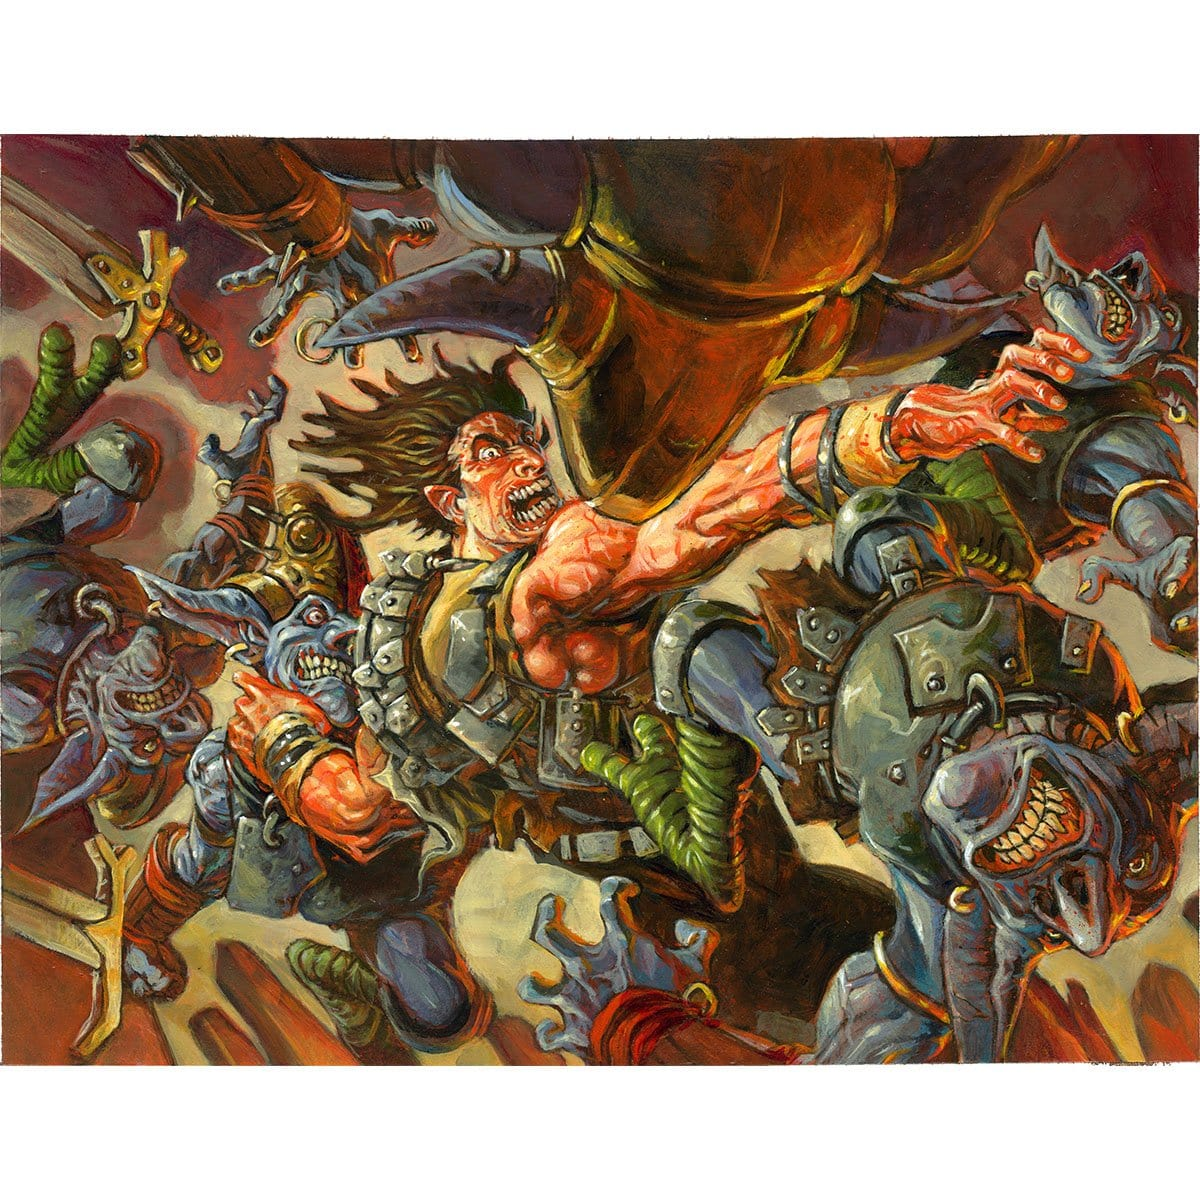 Fatal Frenzy Print - Print - Original Magic Art - Accessories for Magic the Gathering and other card games